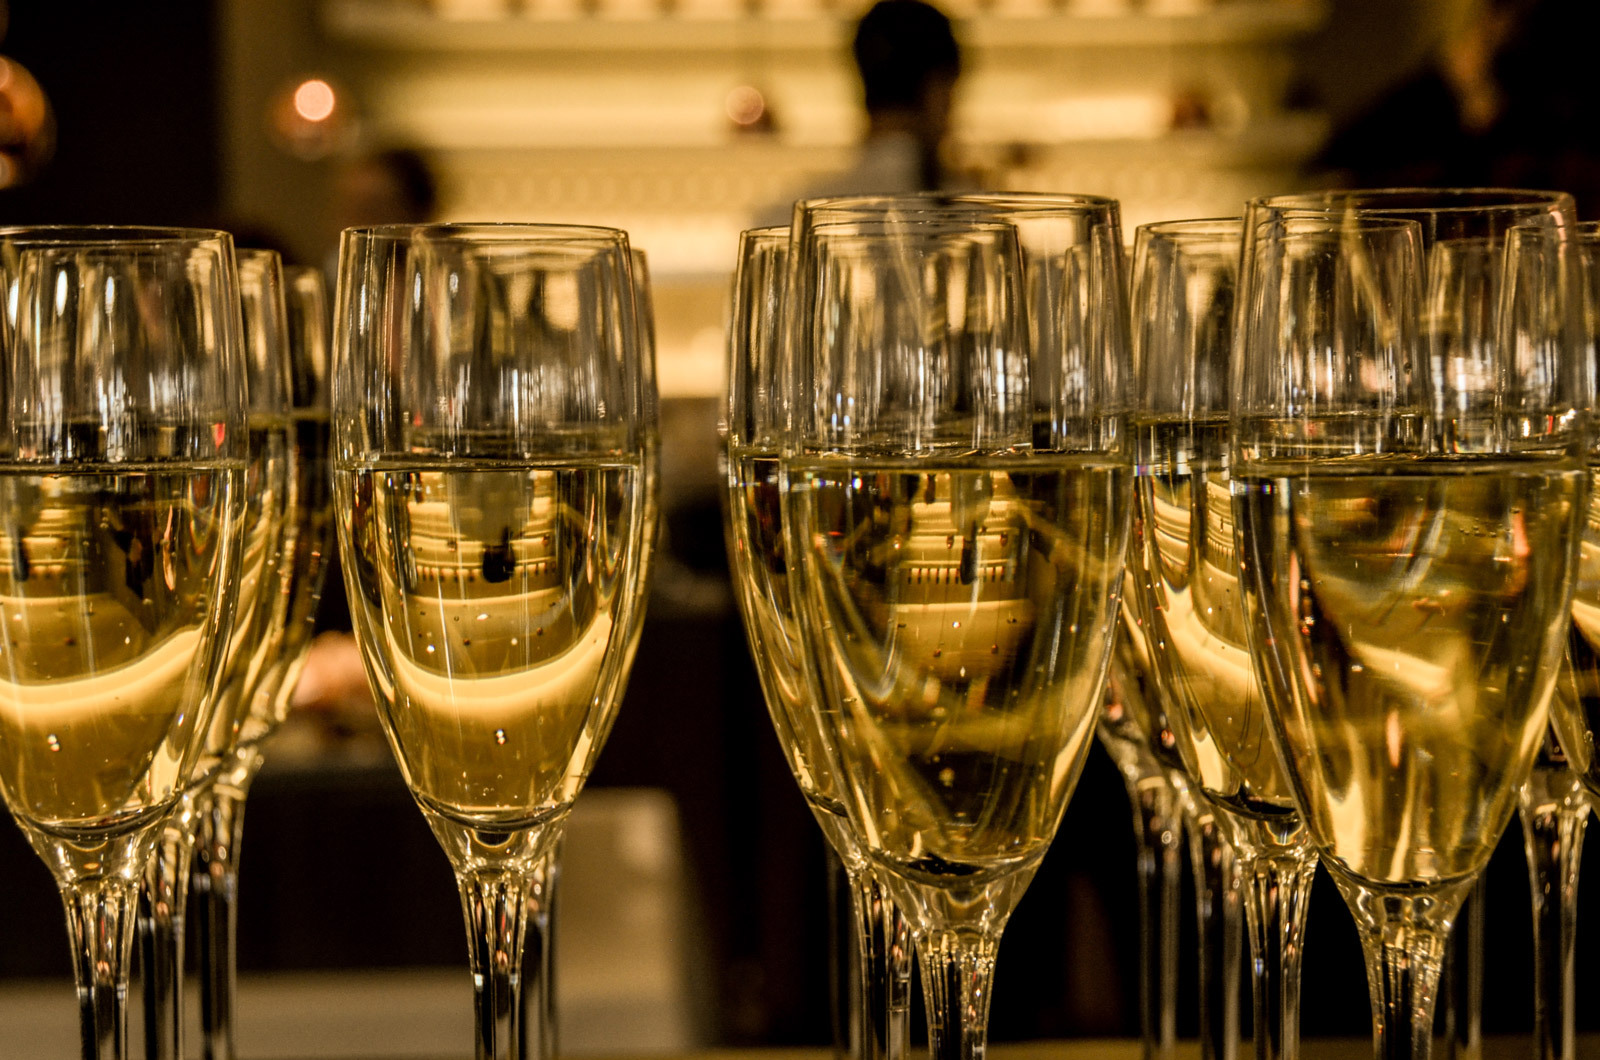 glasses-of-wine-celebrating-the-new-year